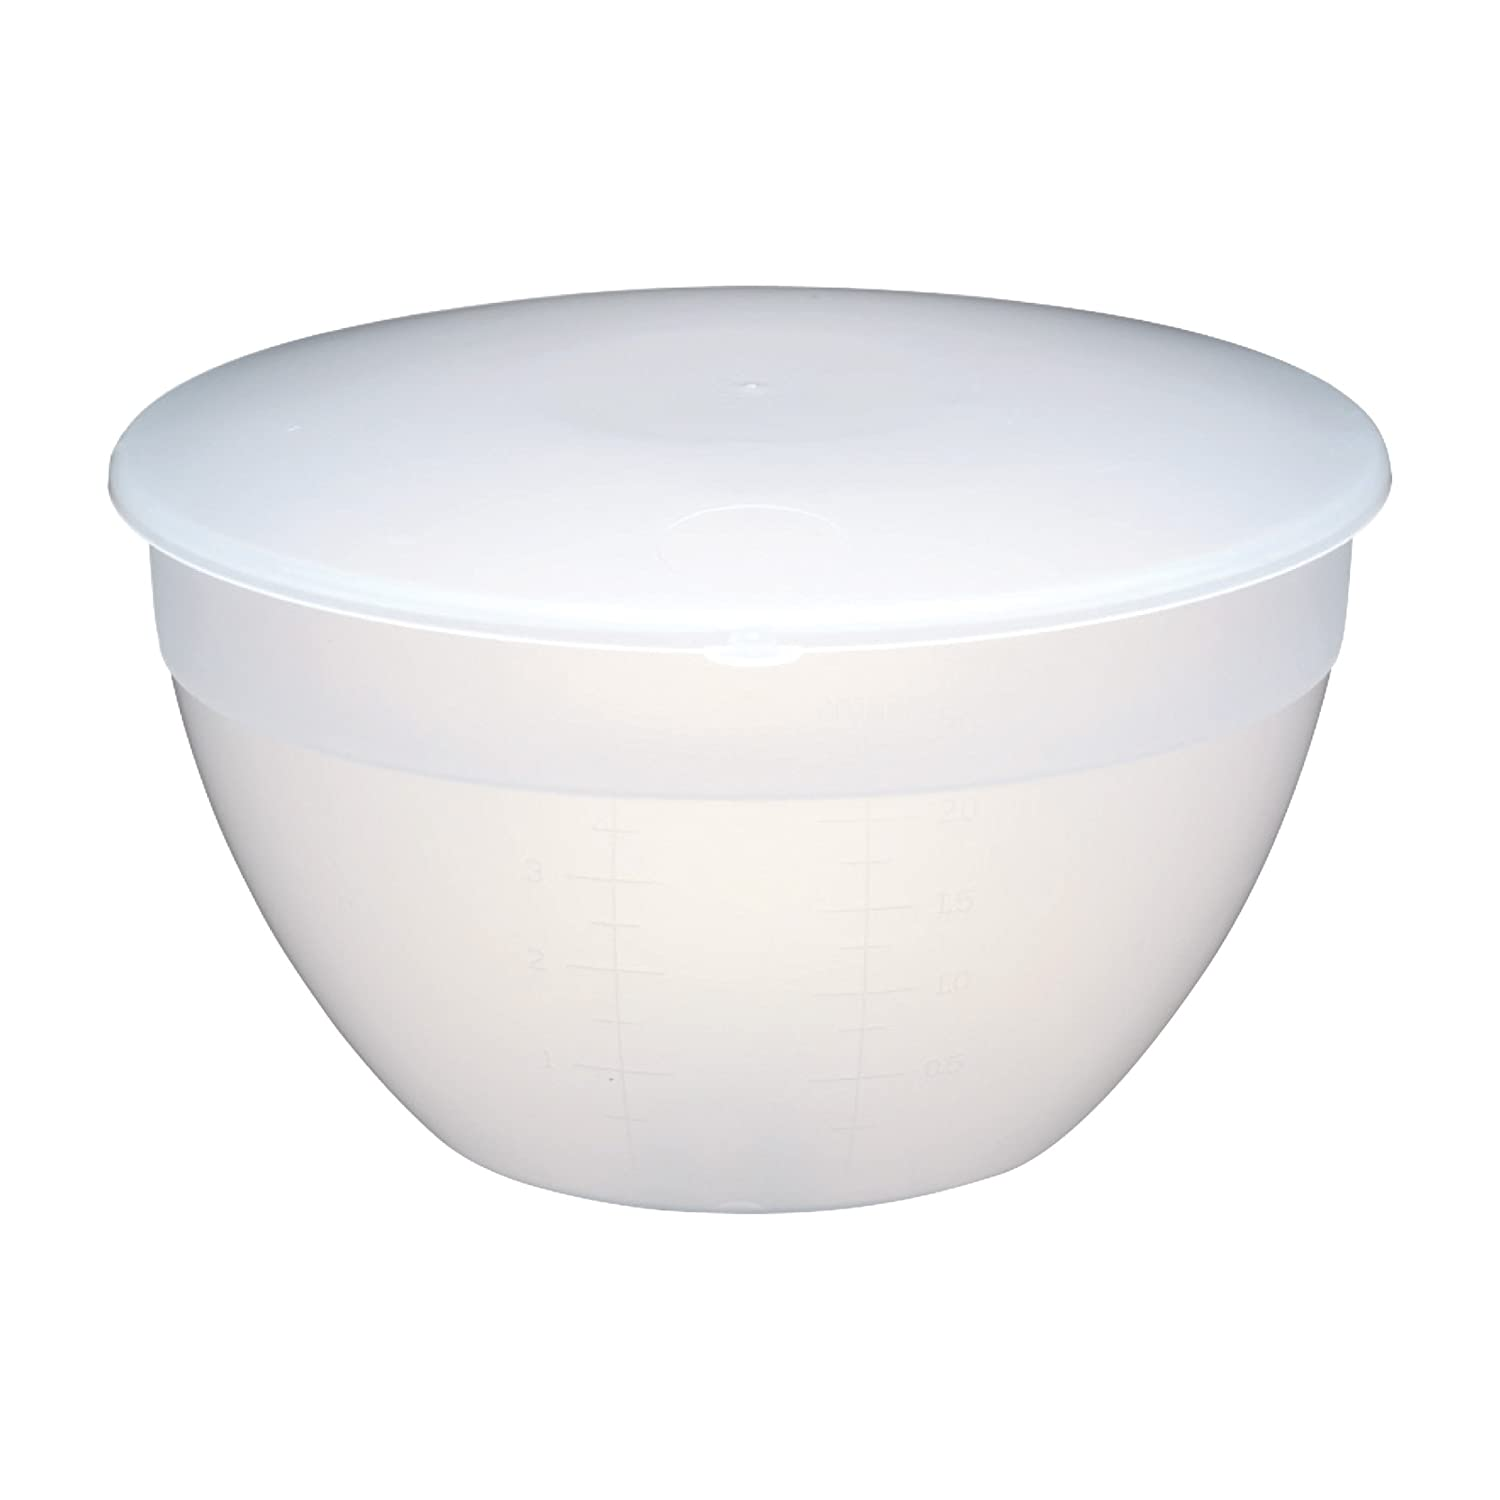 KitchenCraft Medium-Large Plastic Pudding Basin with Lid, 1.1 Litres (2 Pints) Kitchen Craft KCPUD2